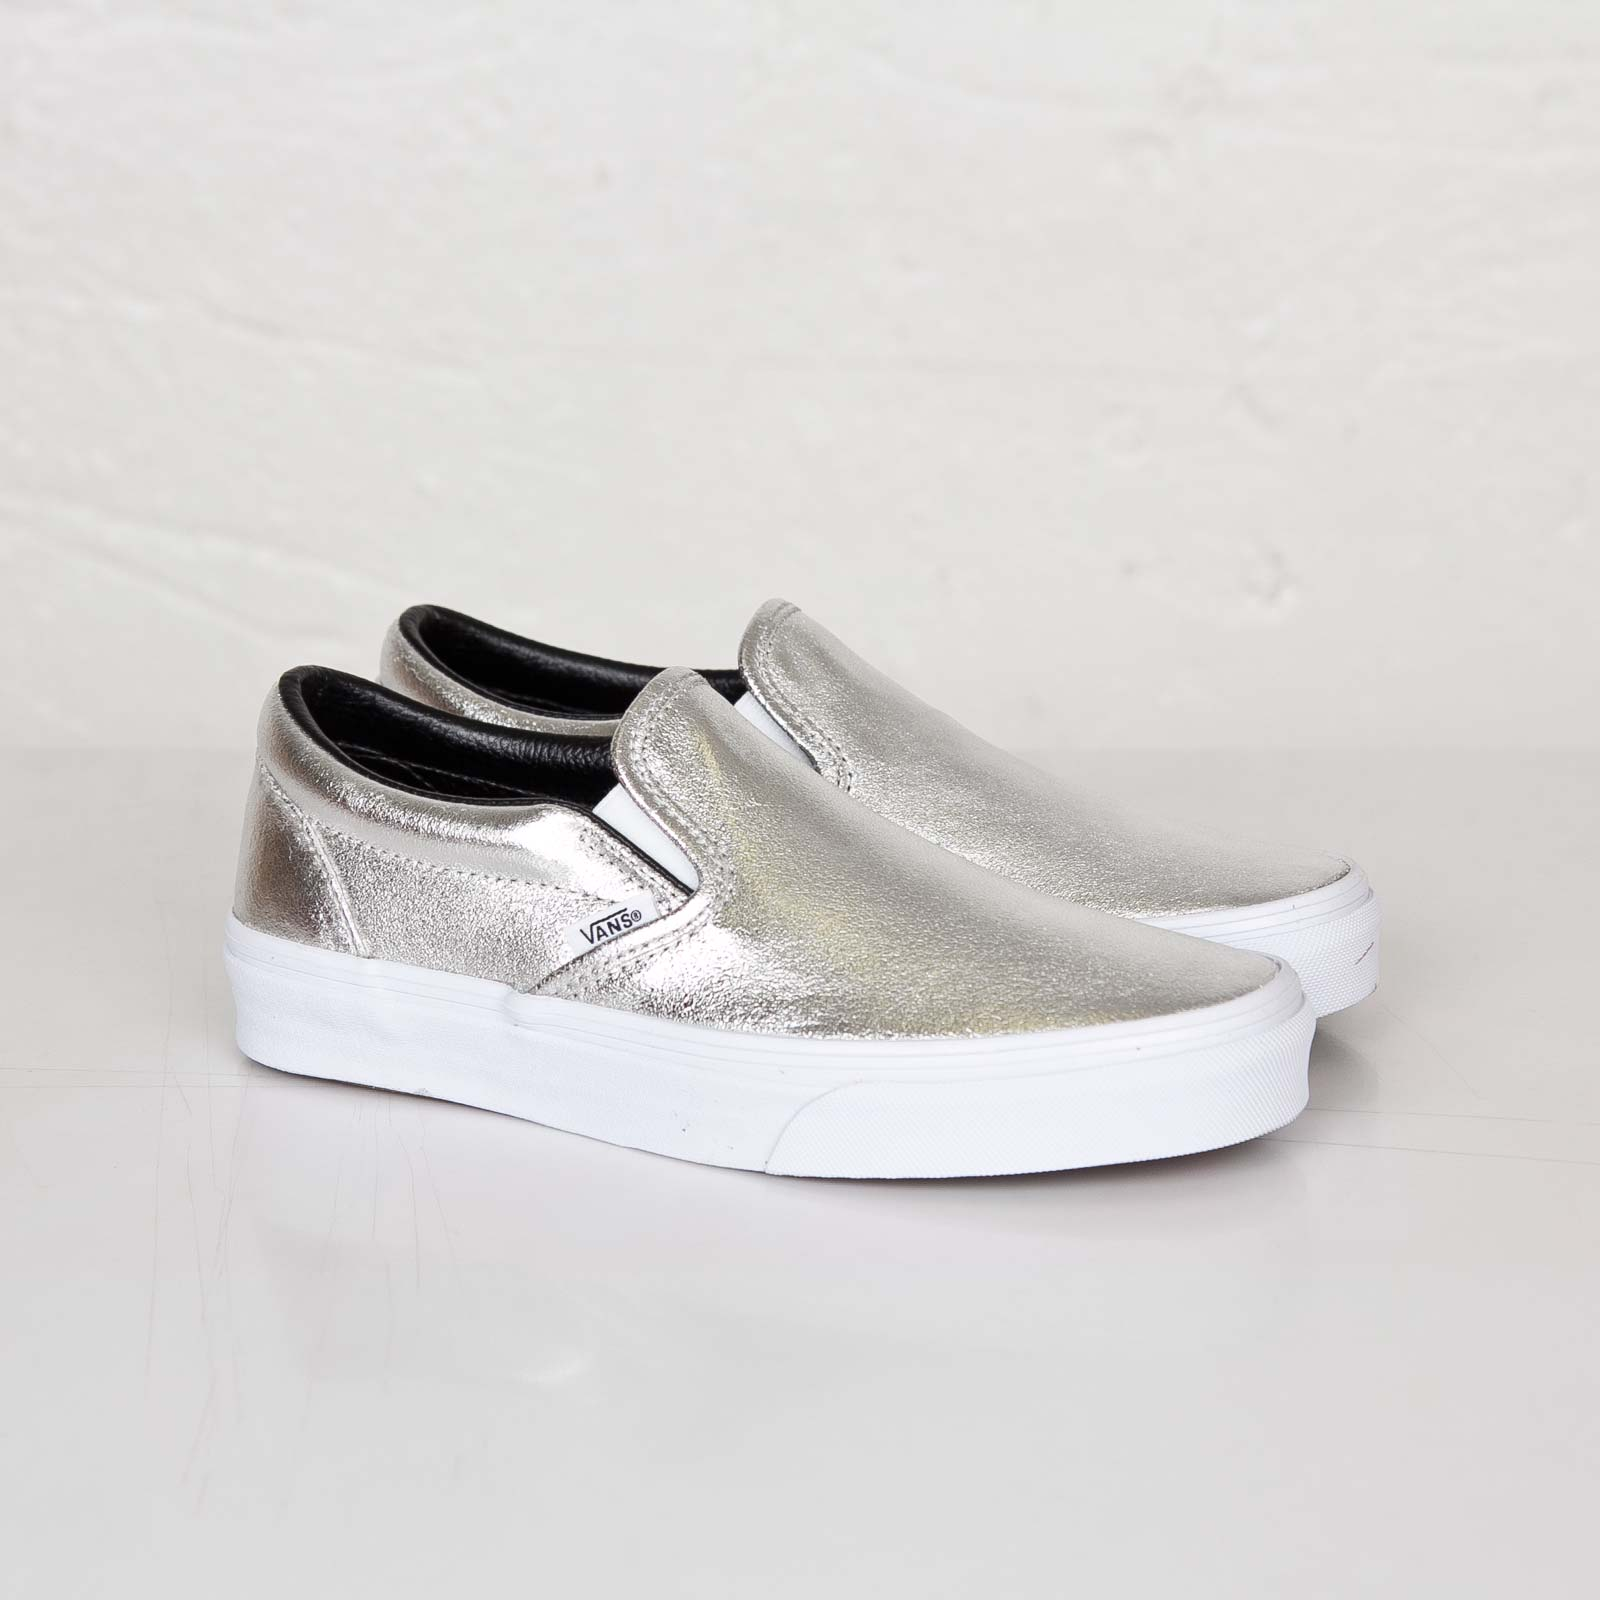 Buy 2 OFF ANY vans slip on sneakers metallic CASE AND GET 70% OFF! 9286faf51